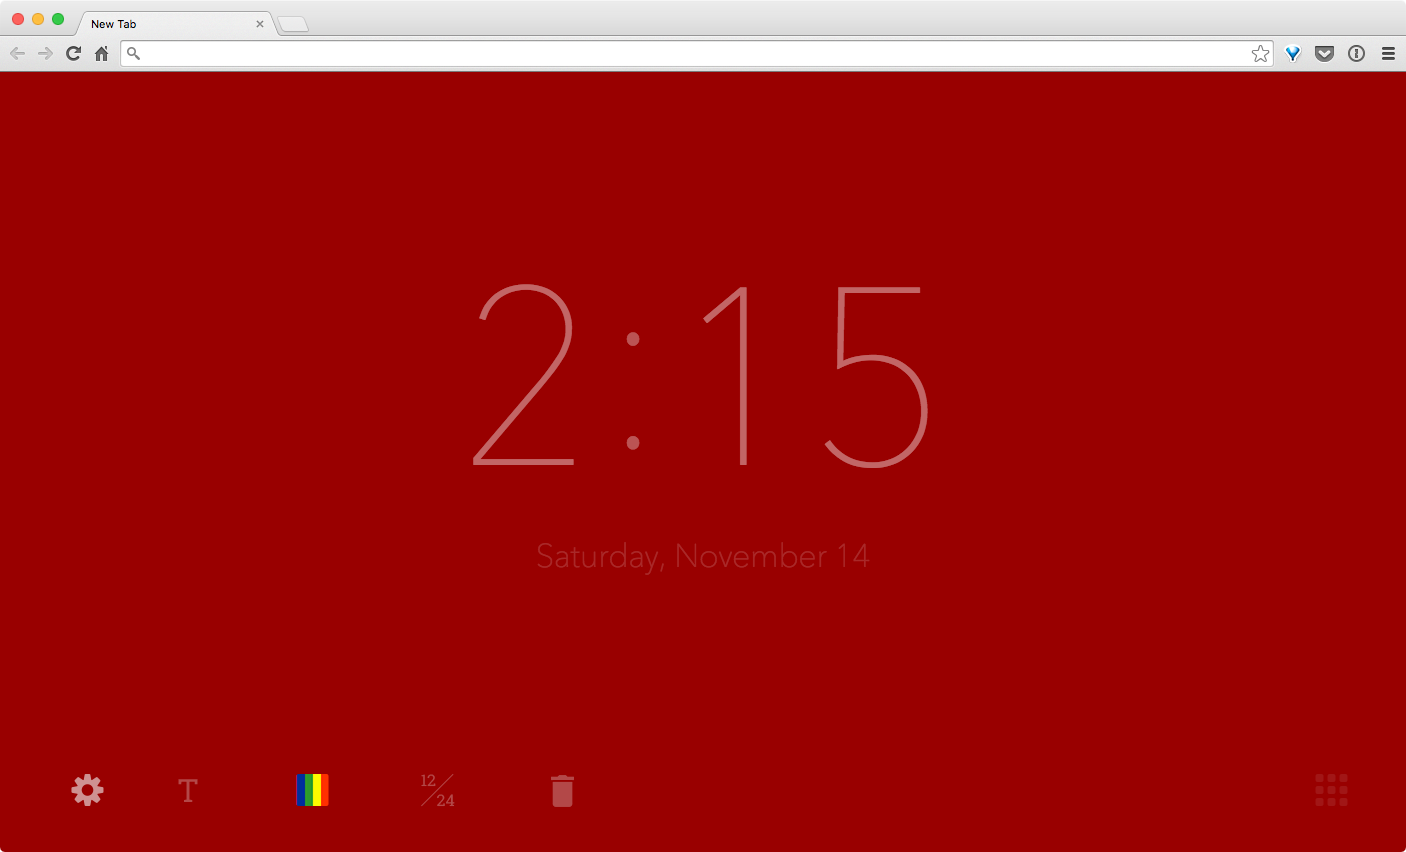 New Tab Clock